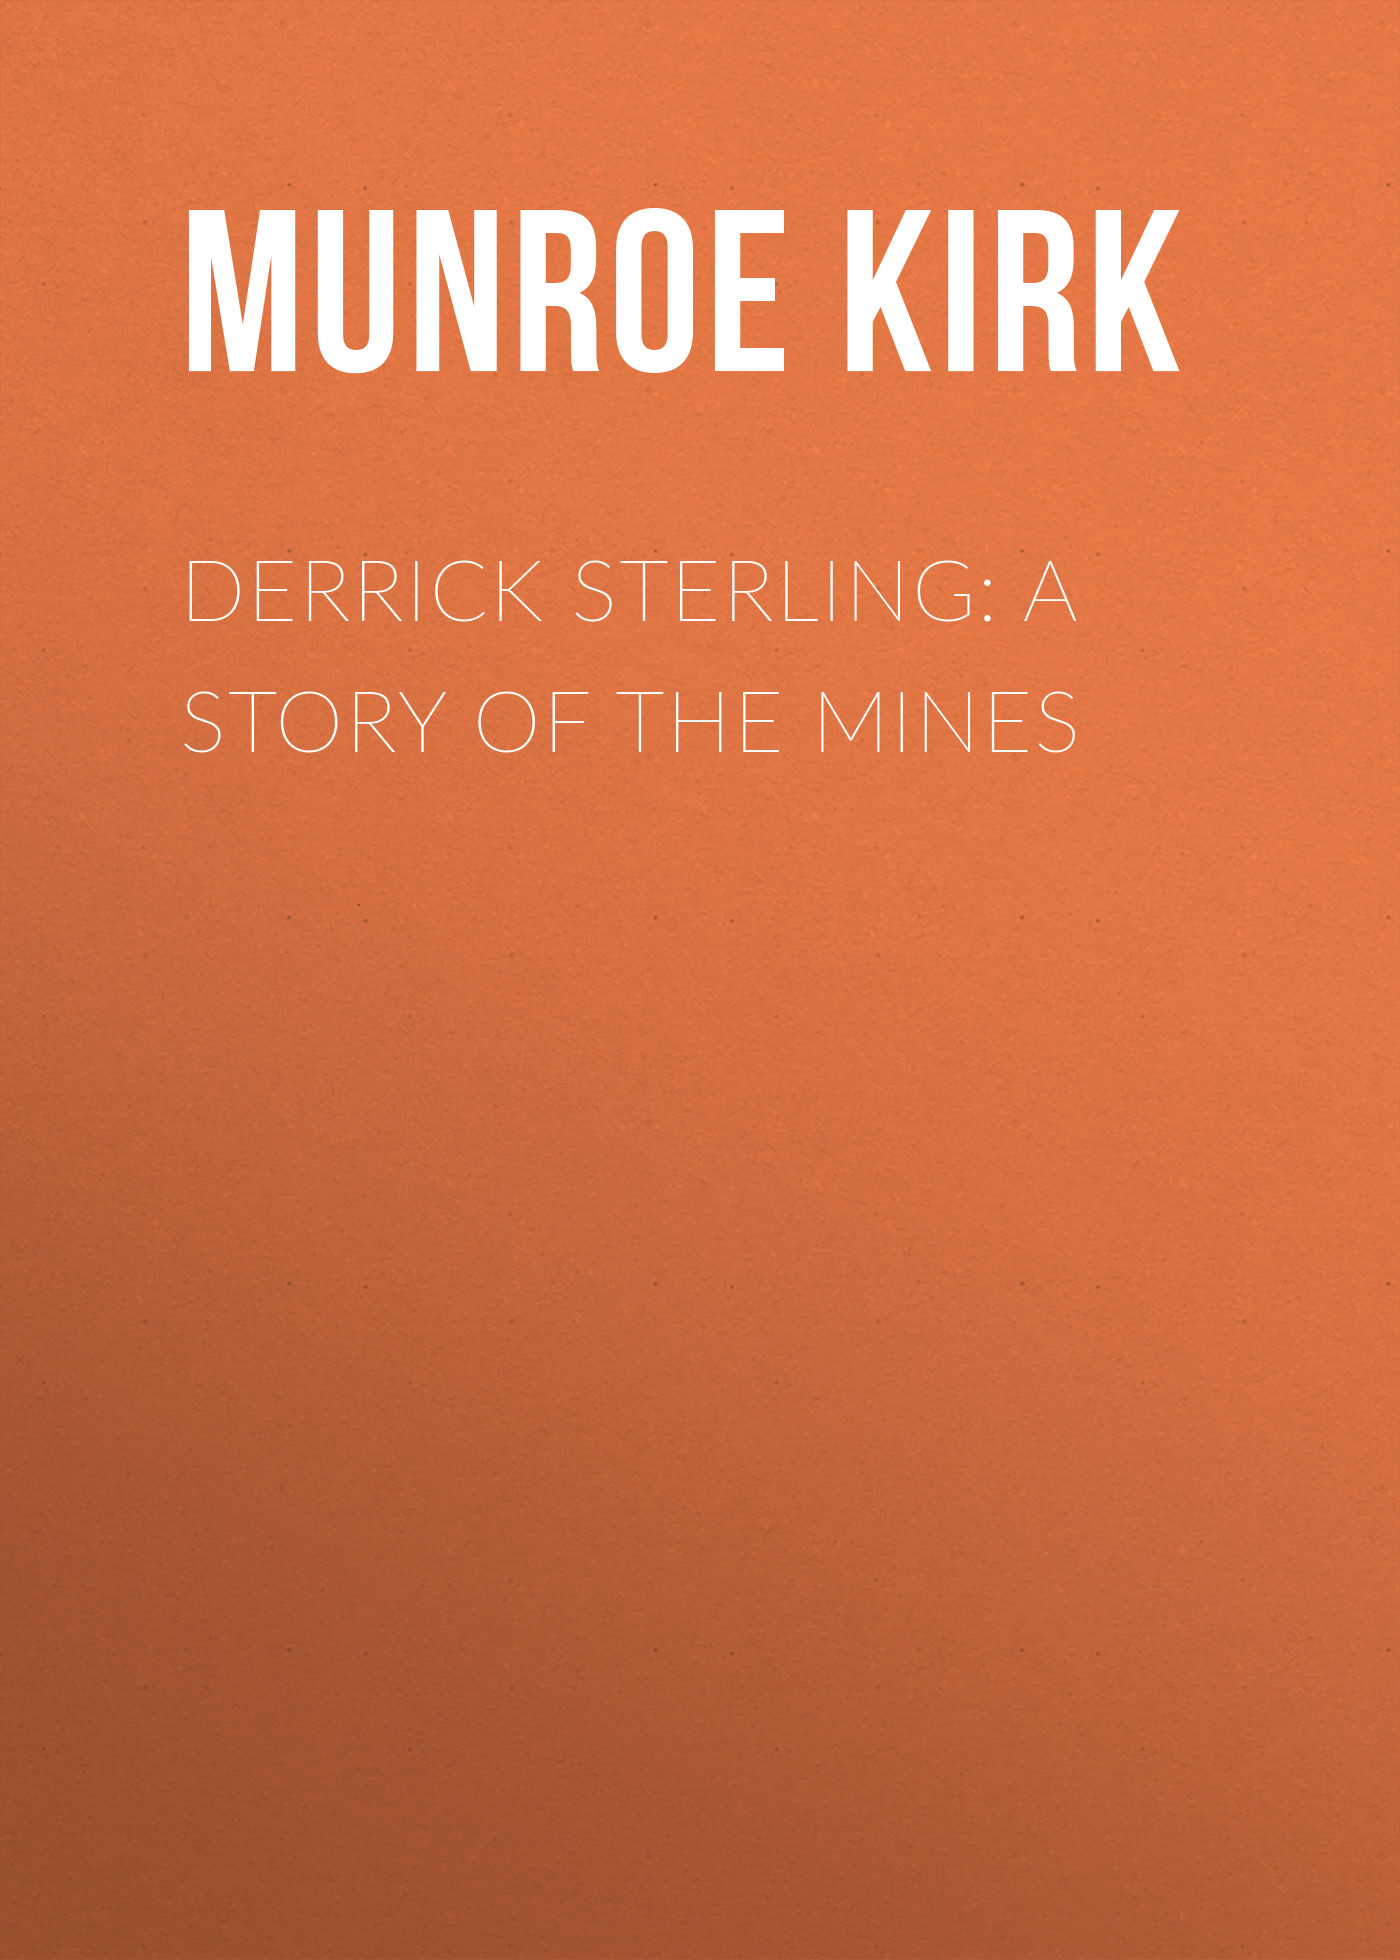 Munroe Kirk Derrick Sterling: A Story of the Mines